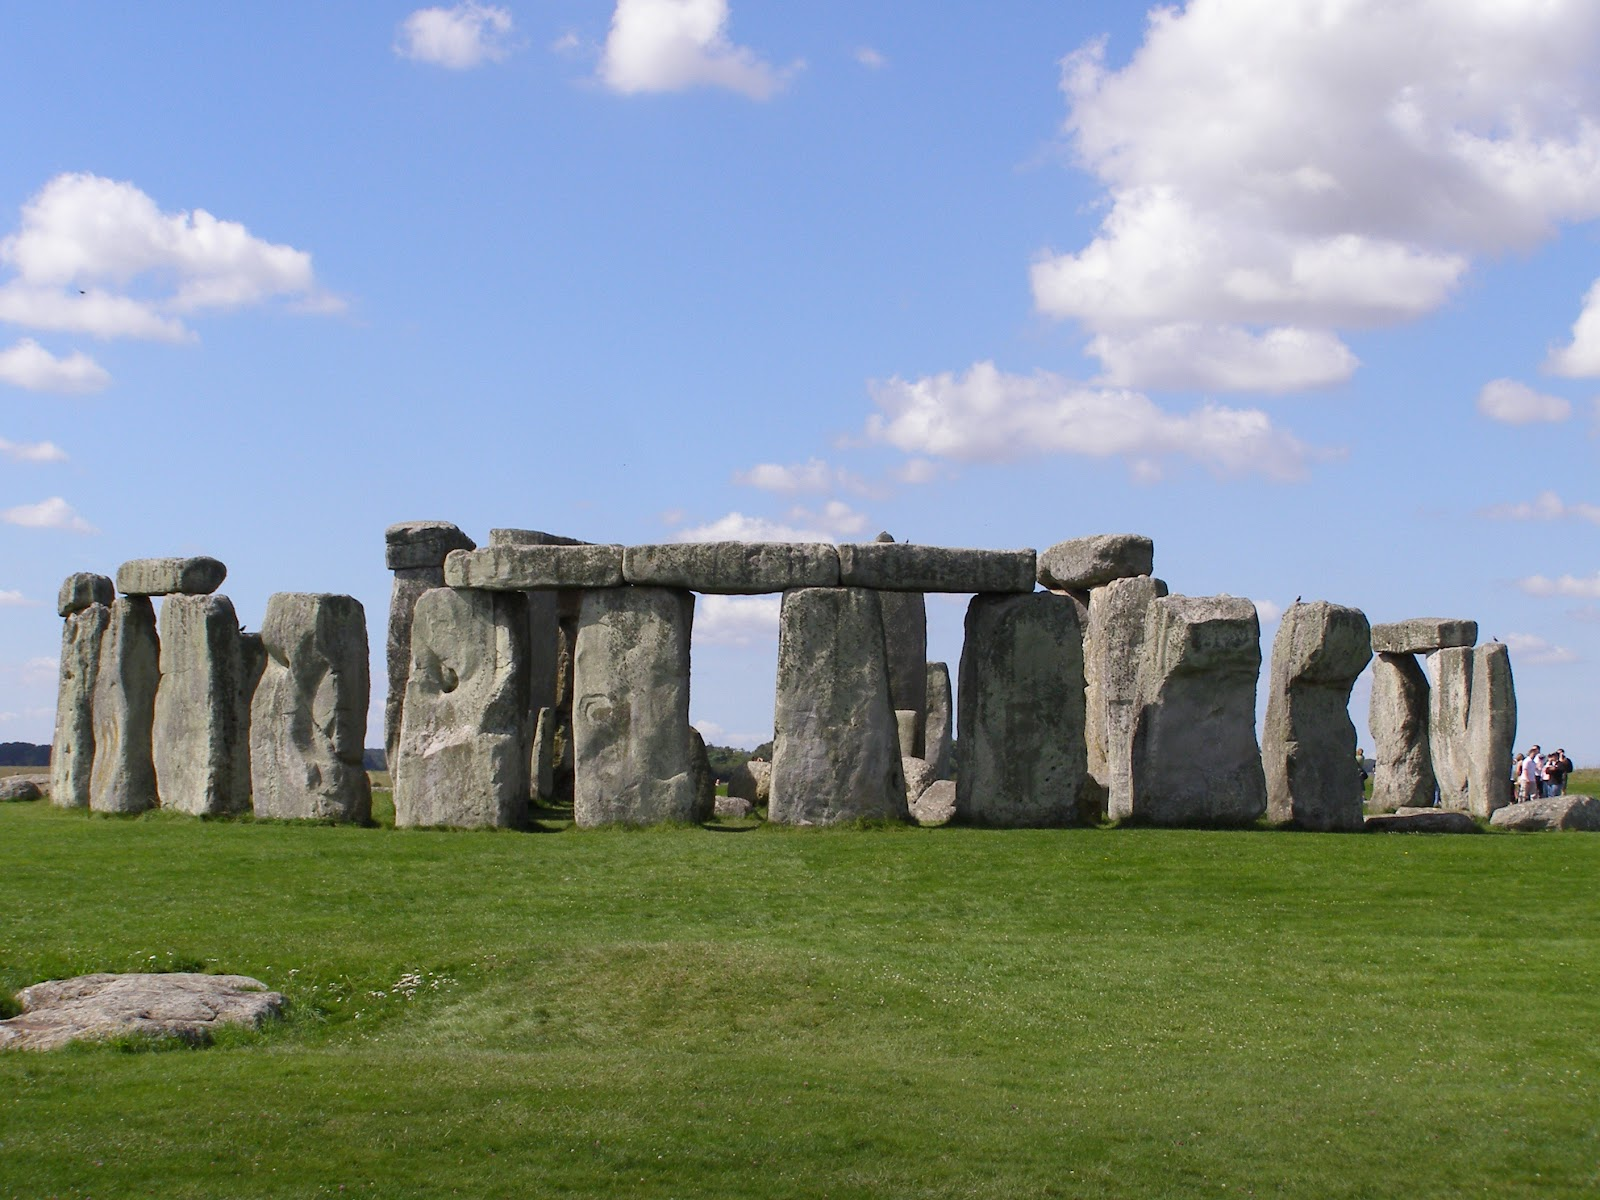 stonehenge natural wonder of the world. Rock formation on a green lawn during a sunny day, some tourists near the right end of the frame.